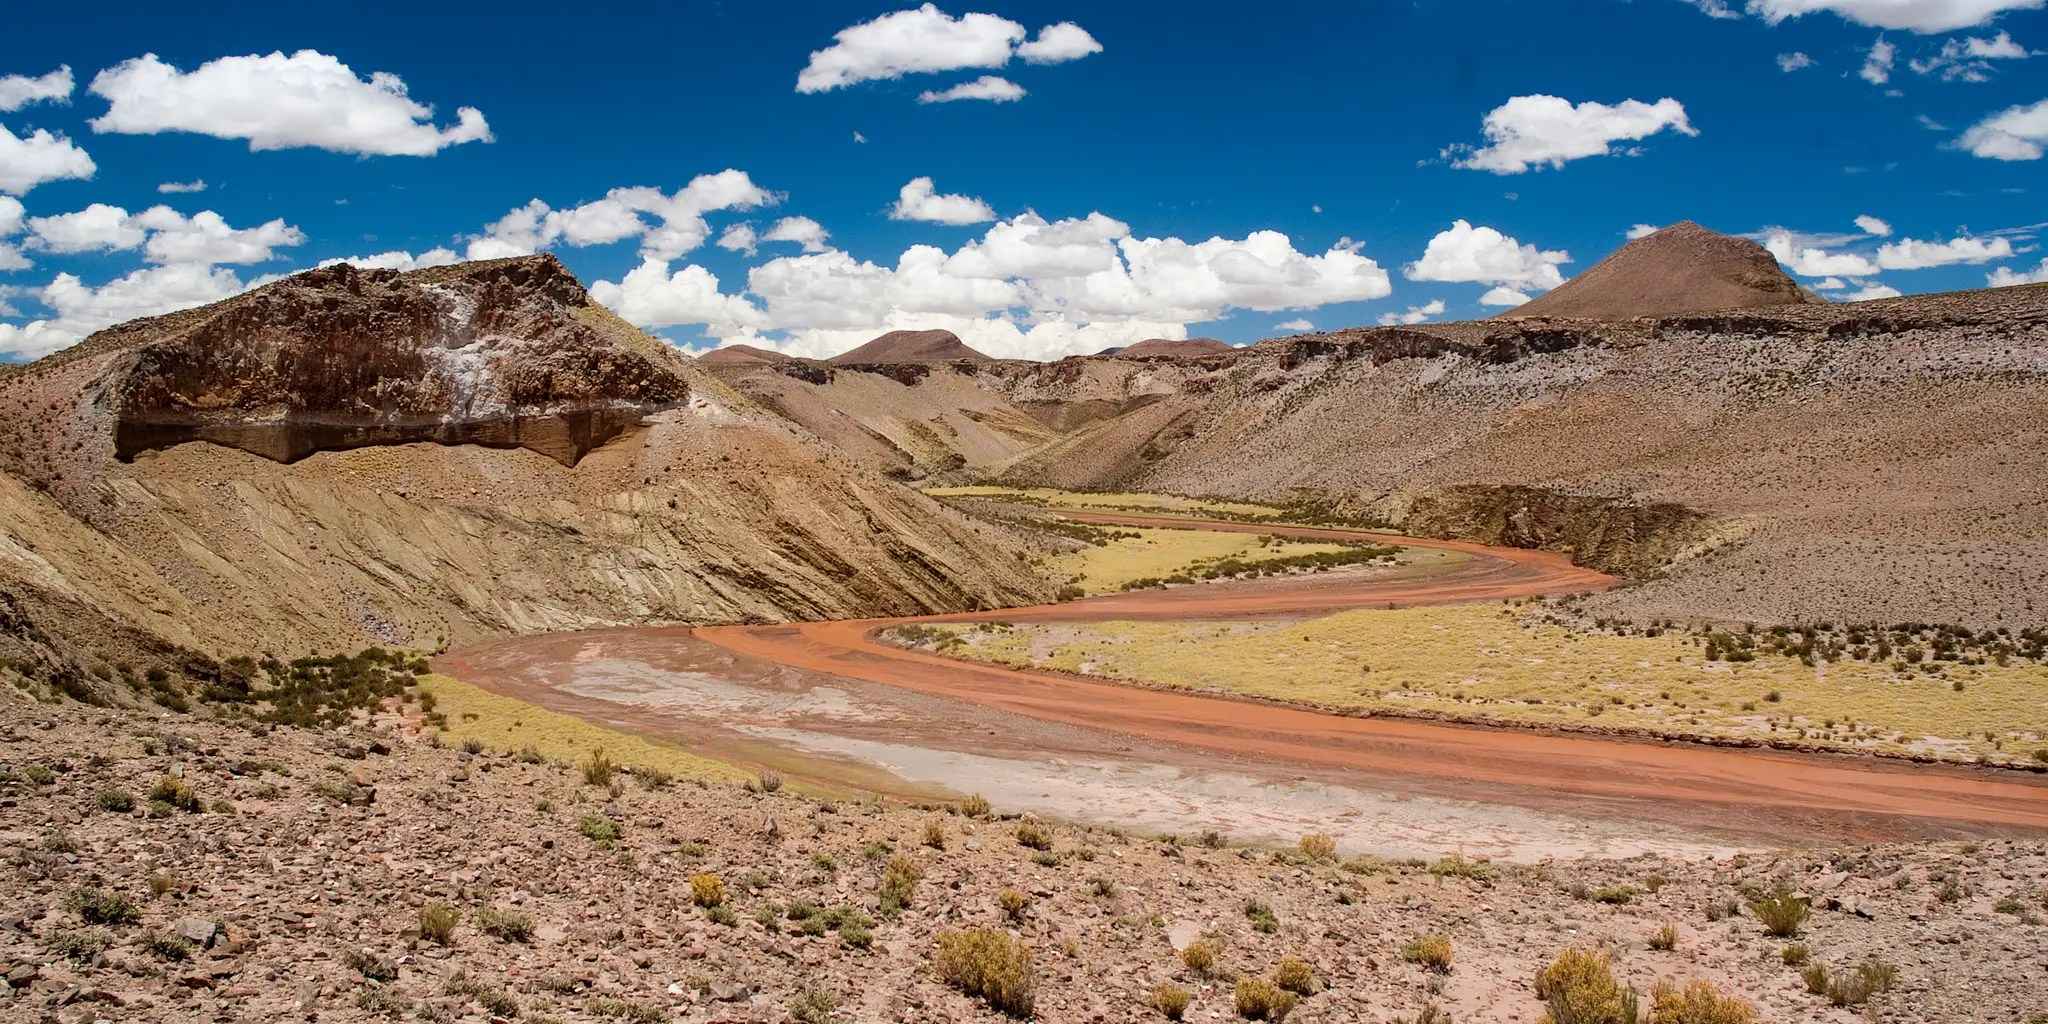 Ruta 40 stretches more than 3,000 miles, from Argentina's northern border to its southern tip. It crosses 18 rivers and passes 20 national parks, making it a perfect scenic drive.